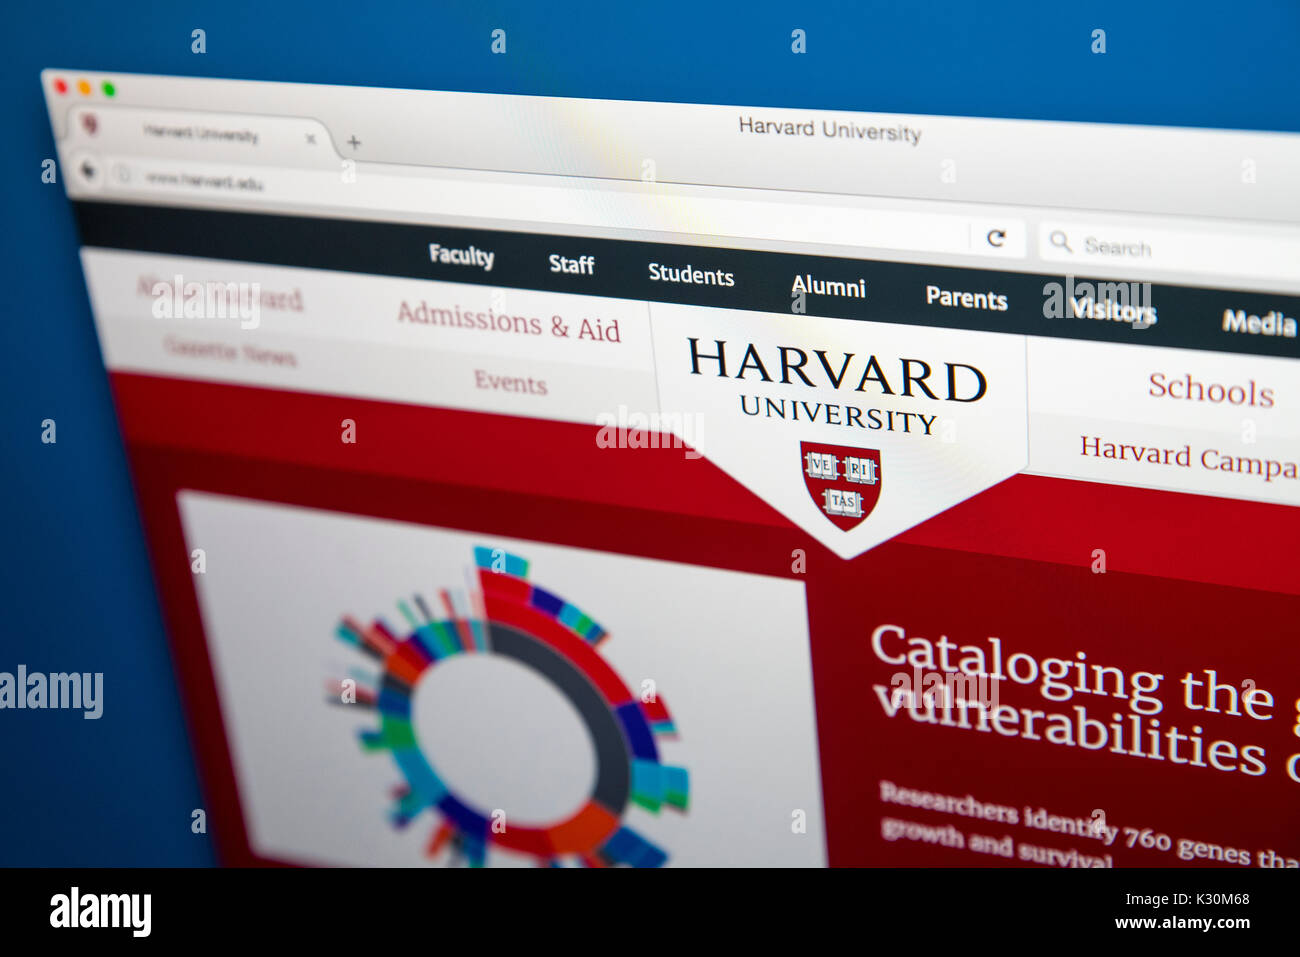 Harvard University Official Website